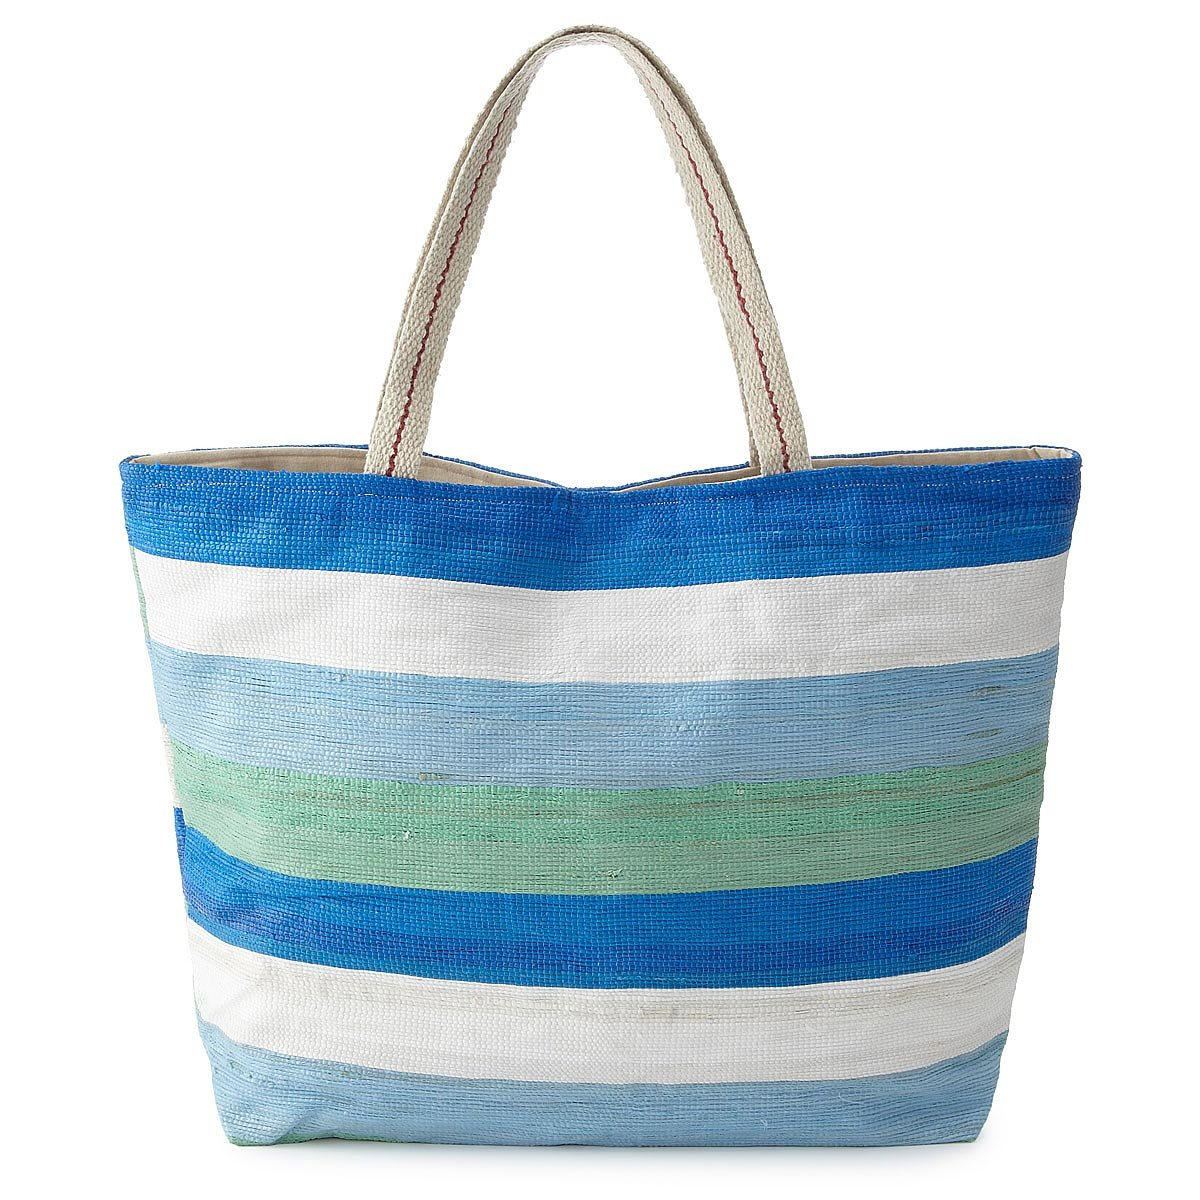 Recycled Plastic Beach Tote | recycled bags, summer, eco friendly ...